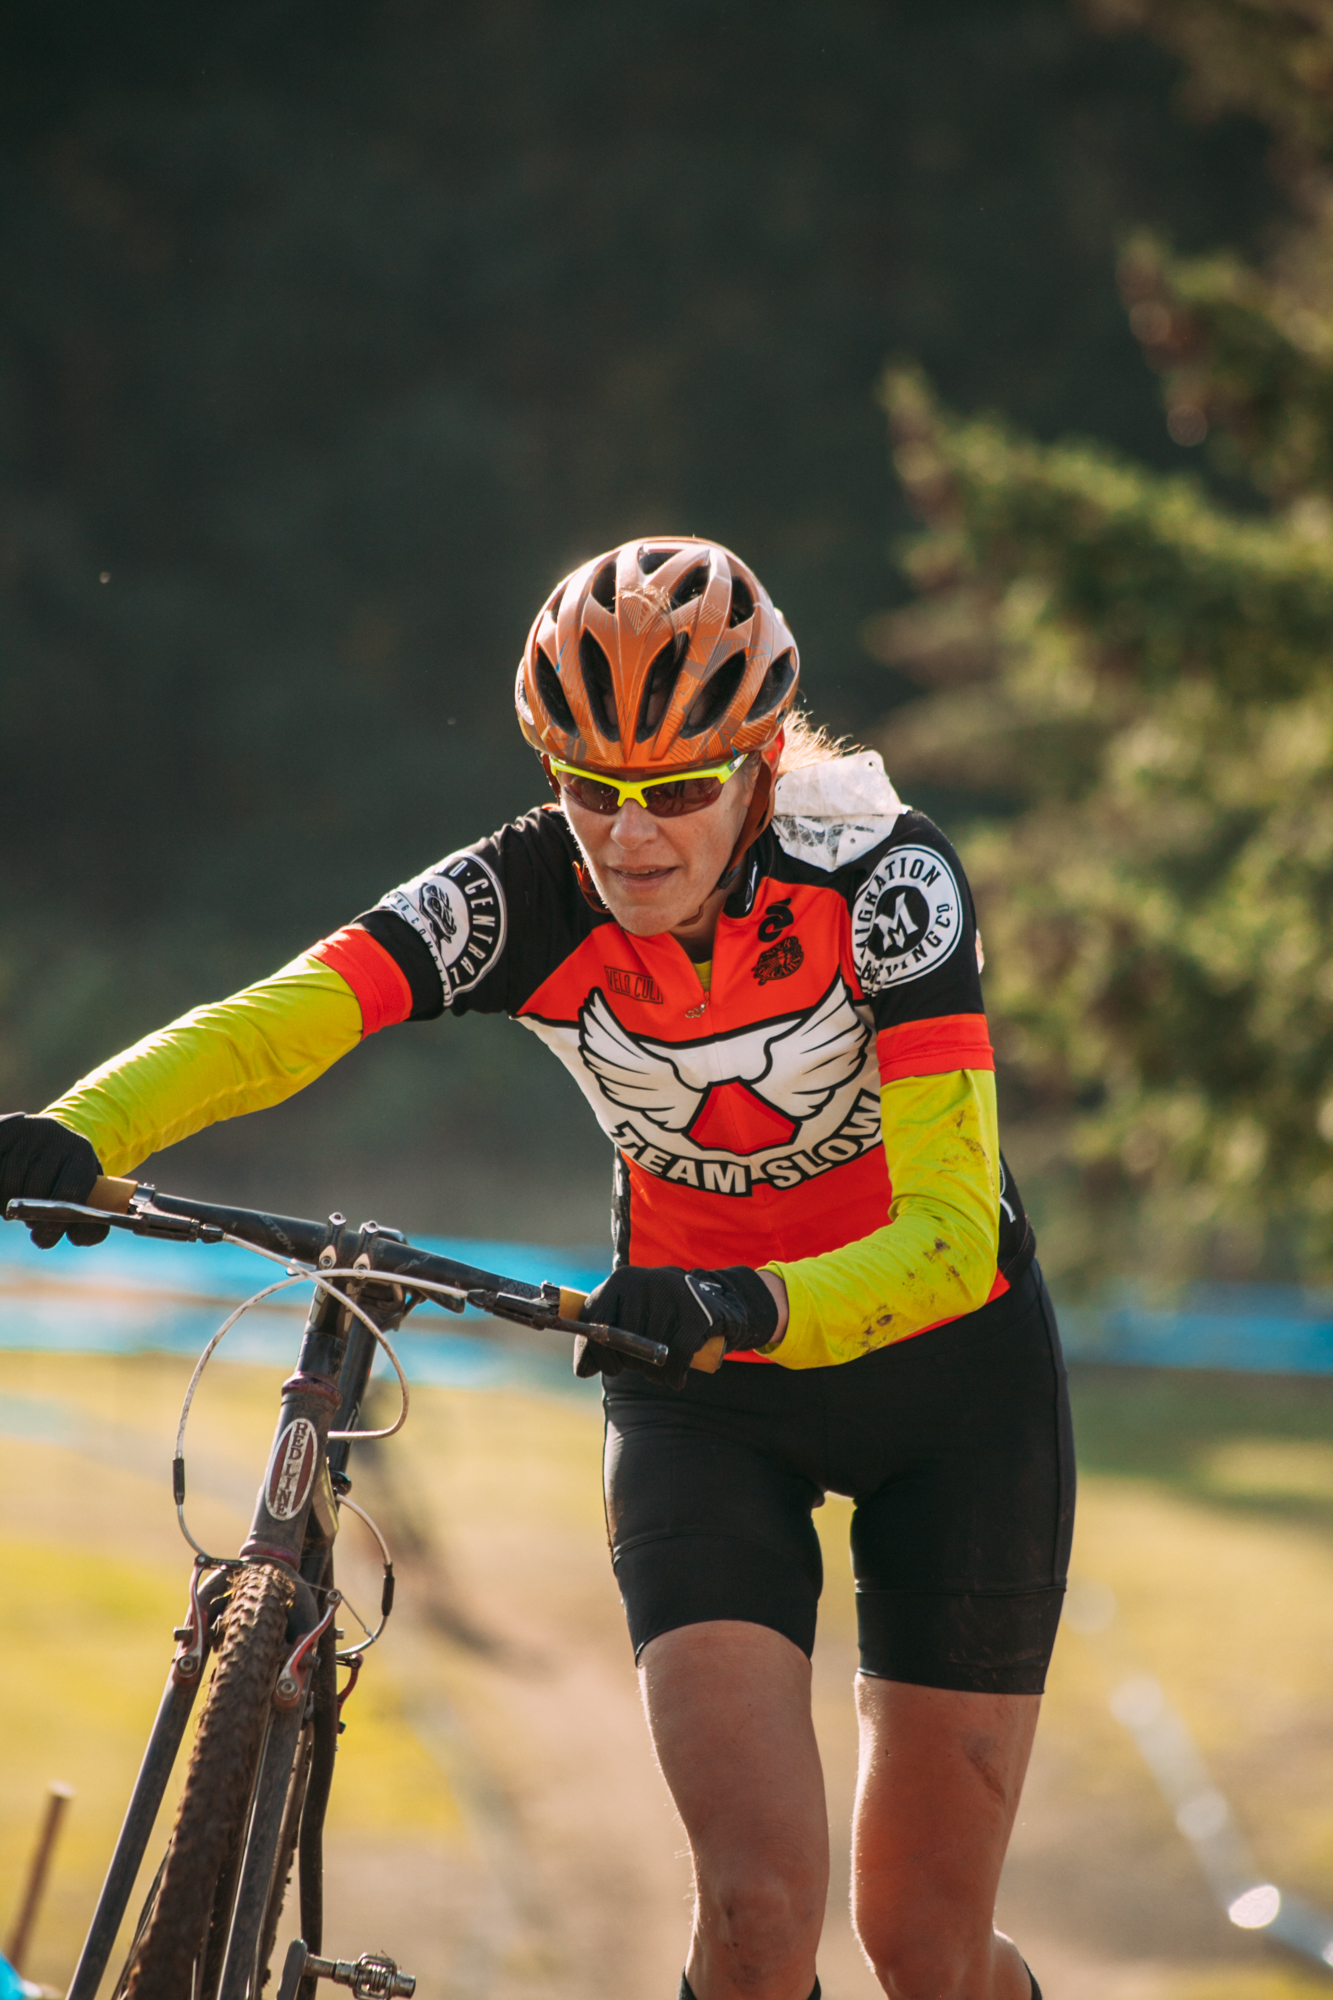 Cyclocross18_CCCX_RainierHS-212-mettlecycling.jpg